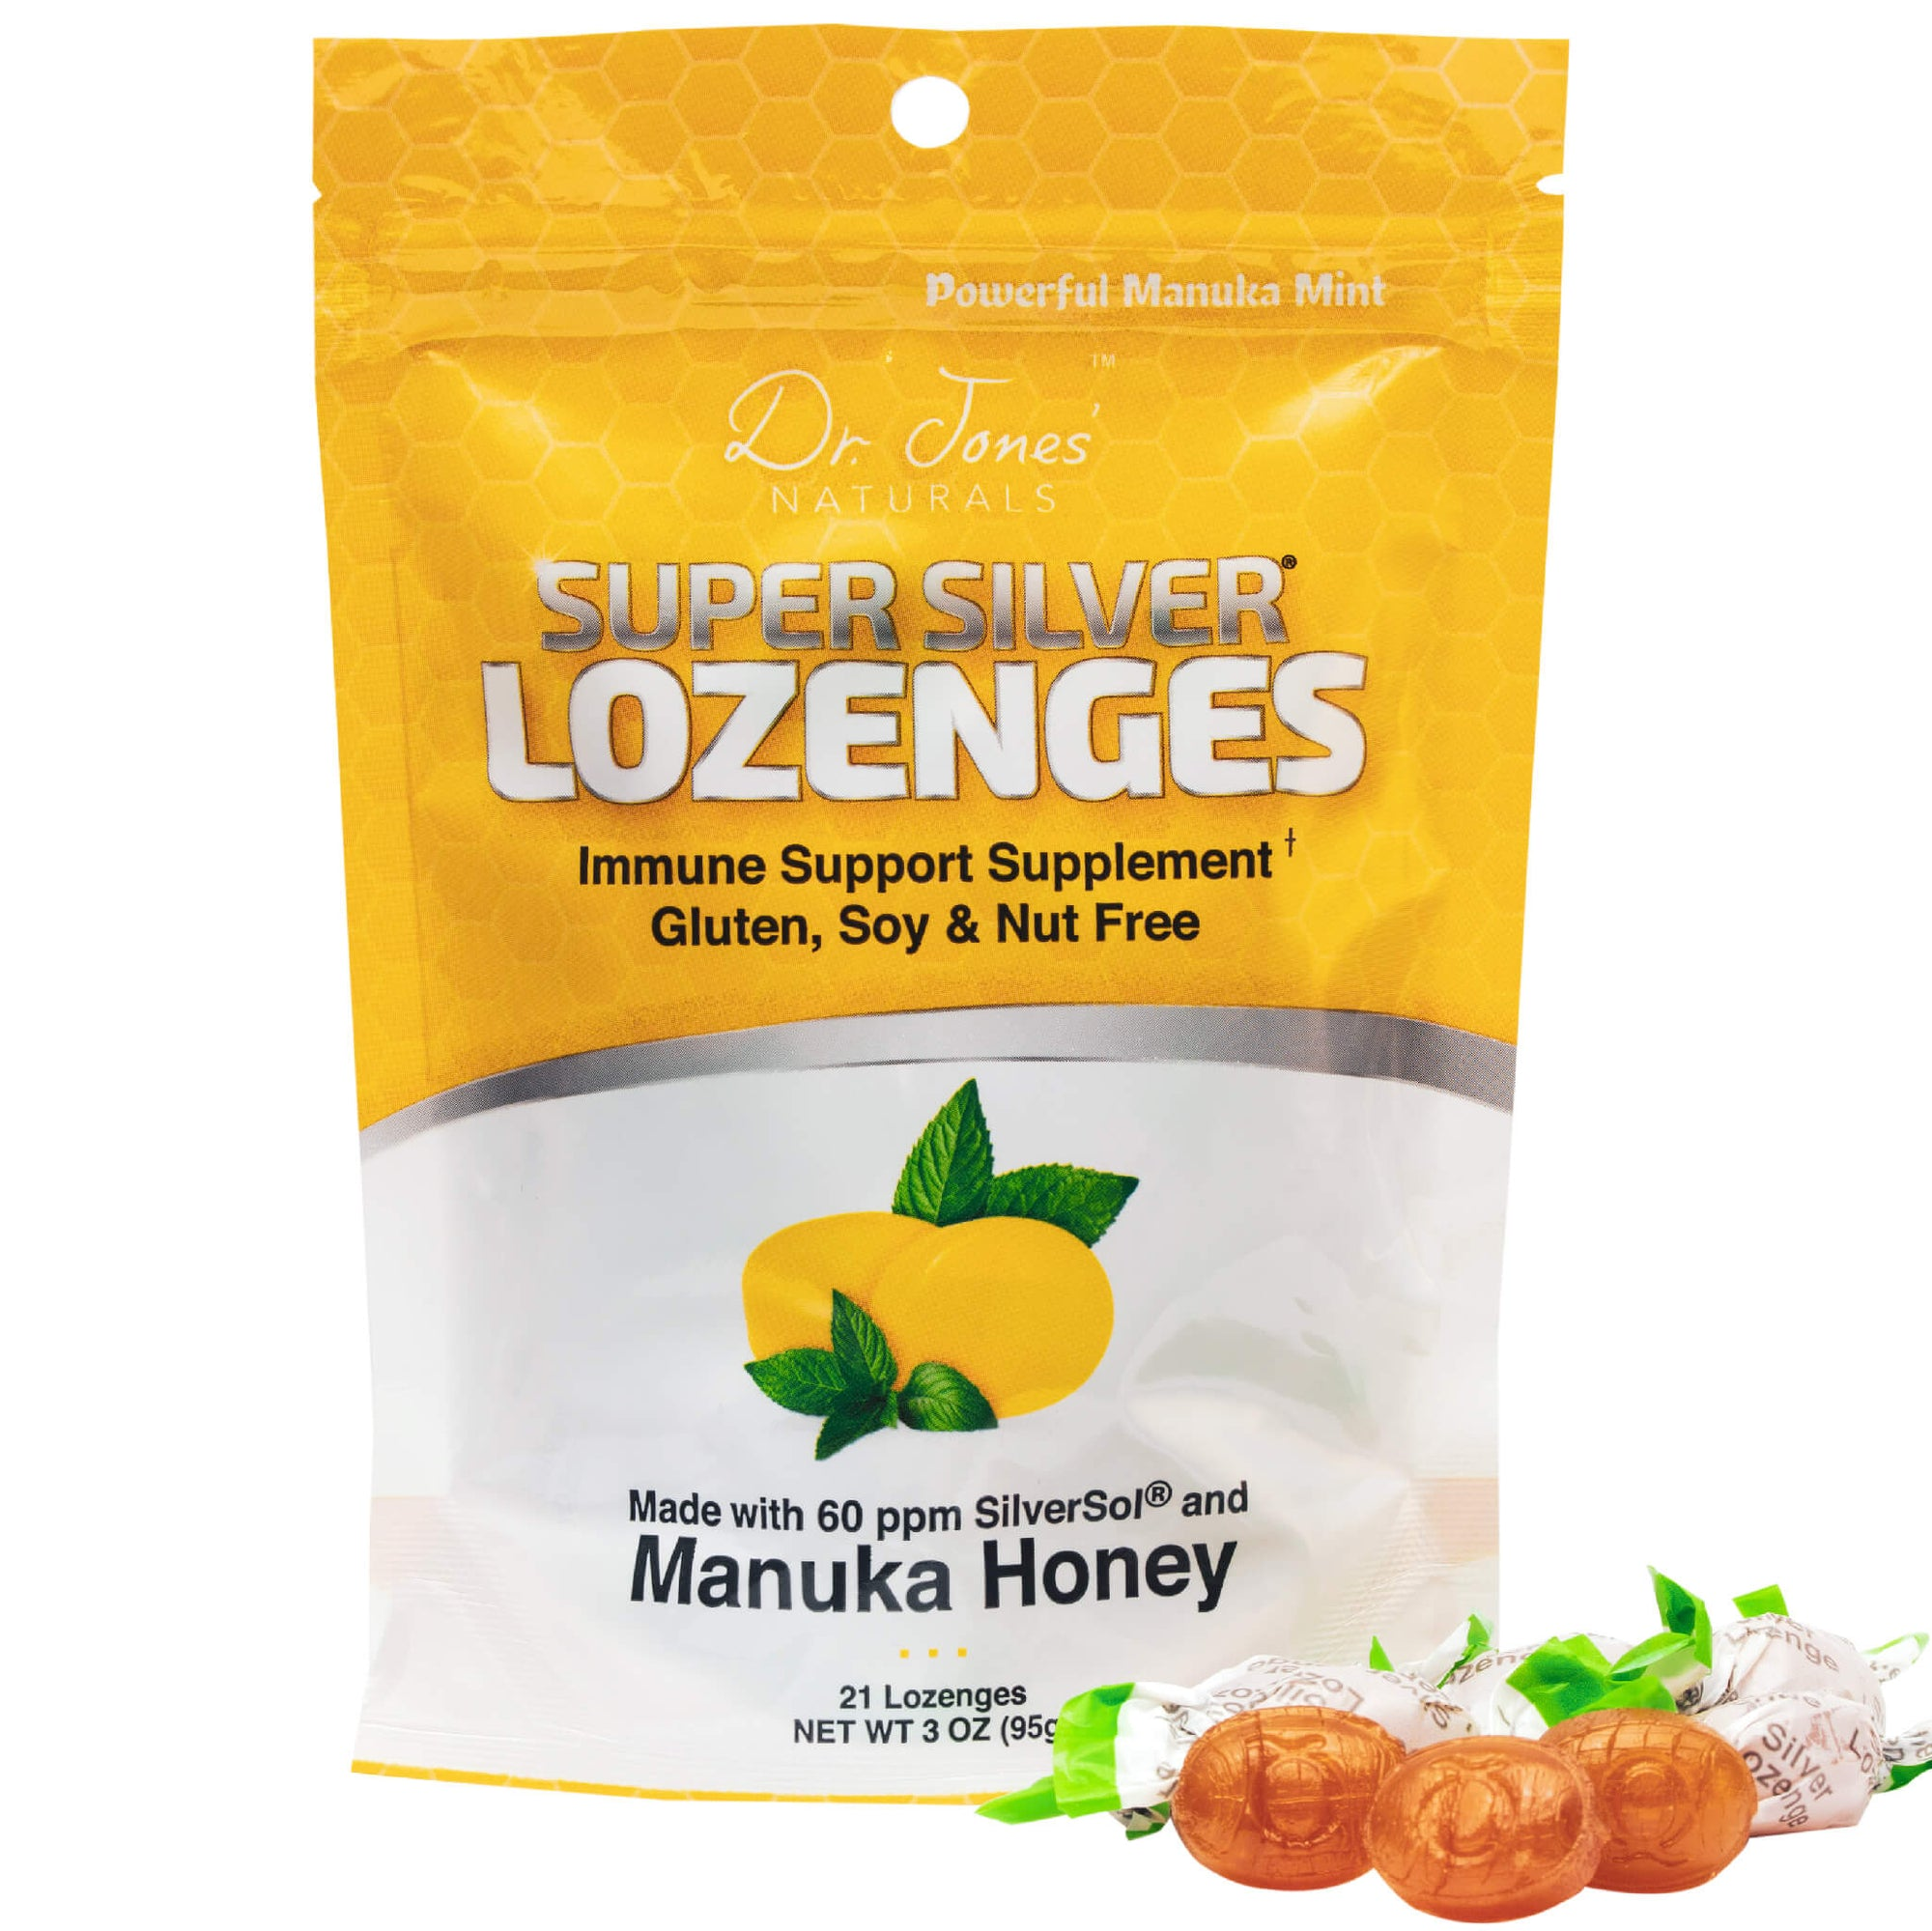 Super Silver Manuka Honey Lozenges